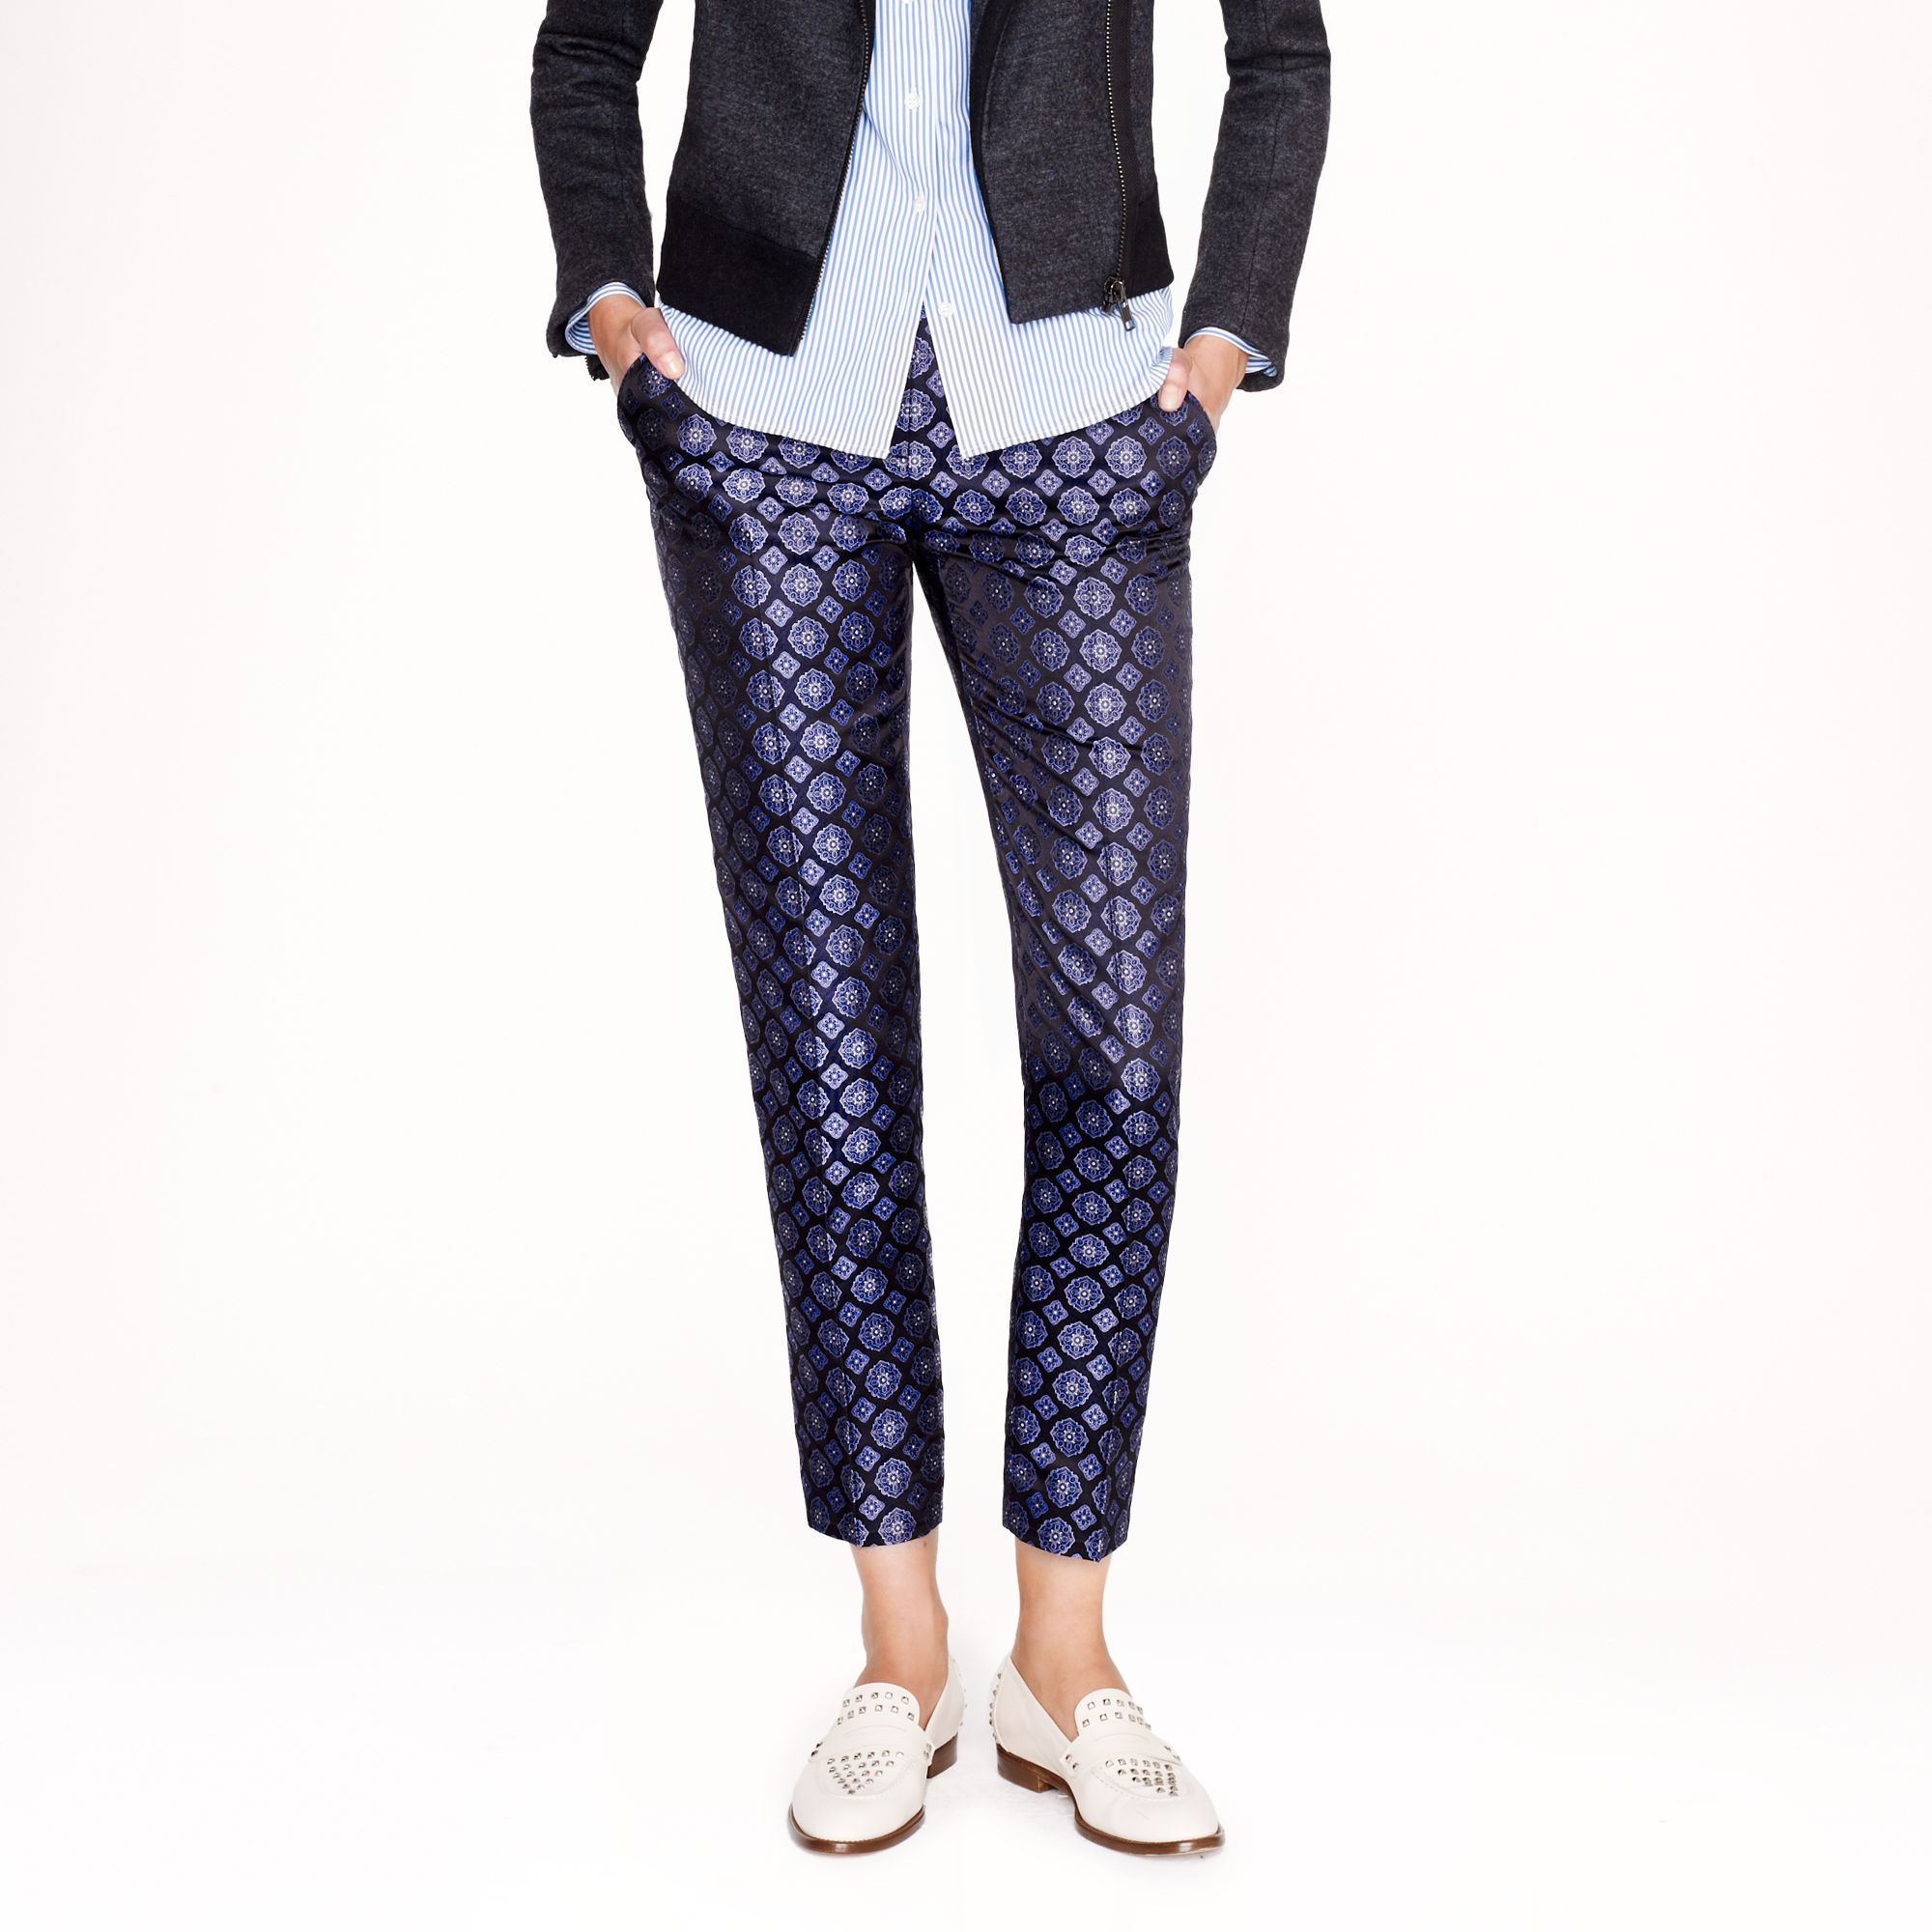 J.Crew Collection Café Capri in Tie Silk | Fancy Friday - Fancy Pants Holiday Pieces